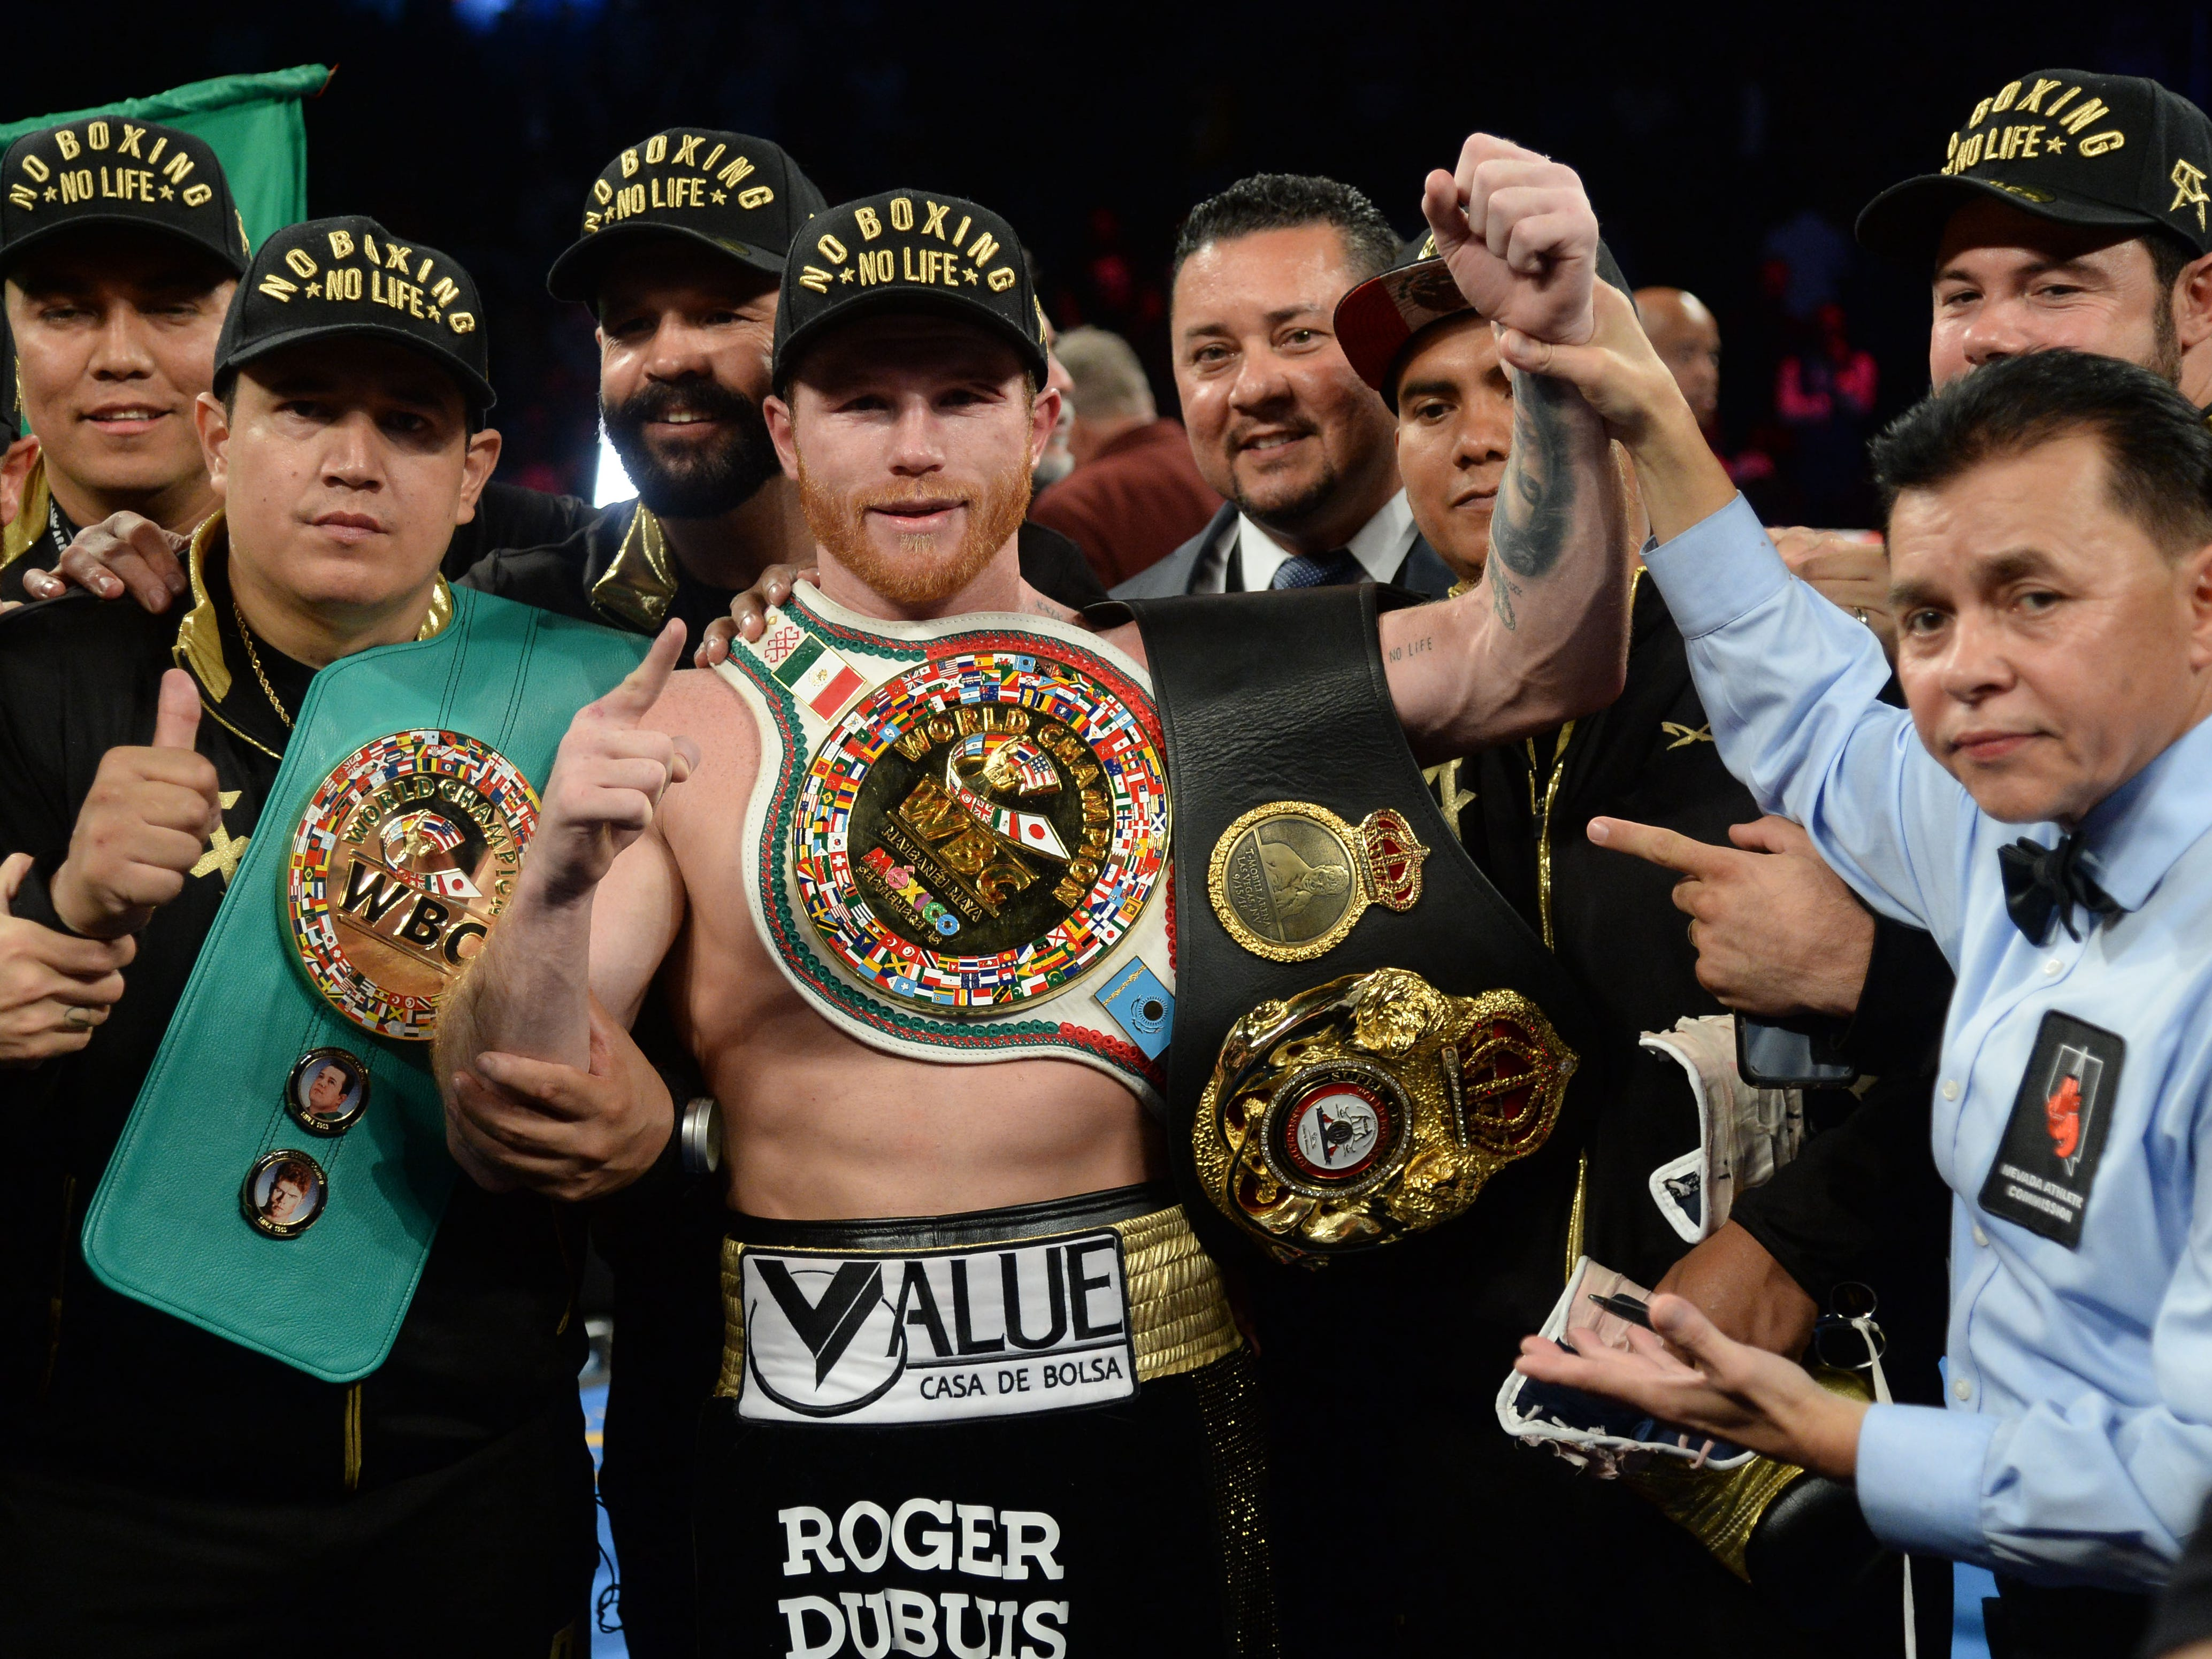 Canelo Alvarez celebrates after defeating Gennady Golovkin by a majority decision in their highly anticipated middleweight championship rematch in Las Vegas.